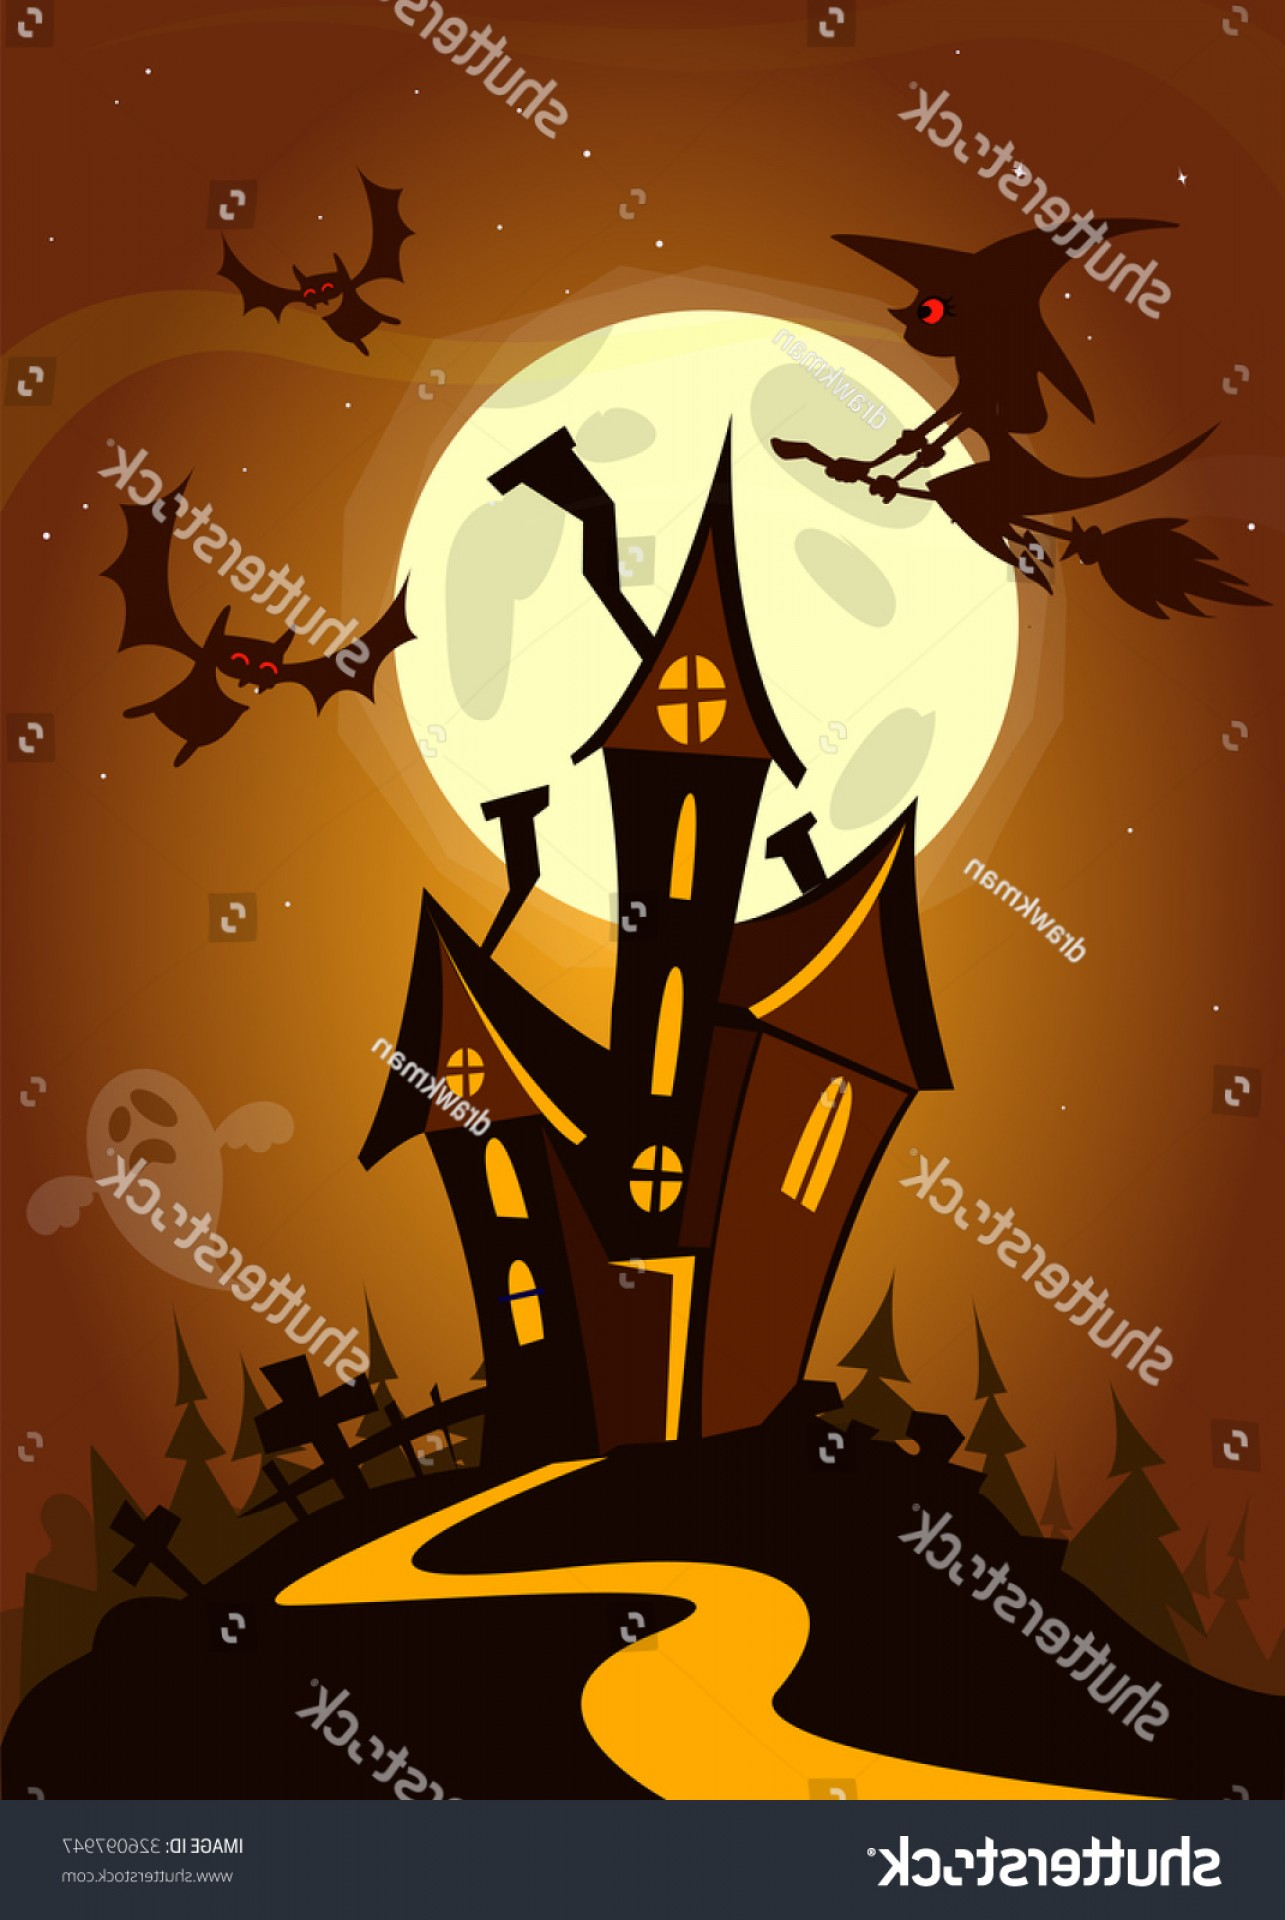 Halloween Haunted House Silhouette Vector: Halloween Haunted House Illustration Vector Background